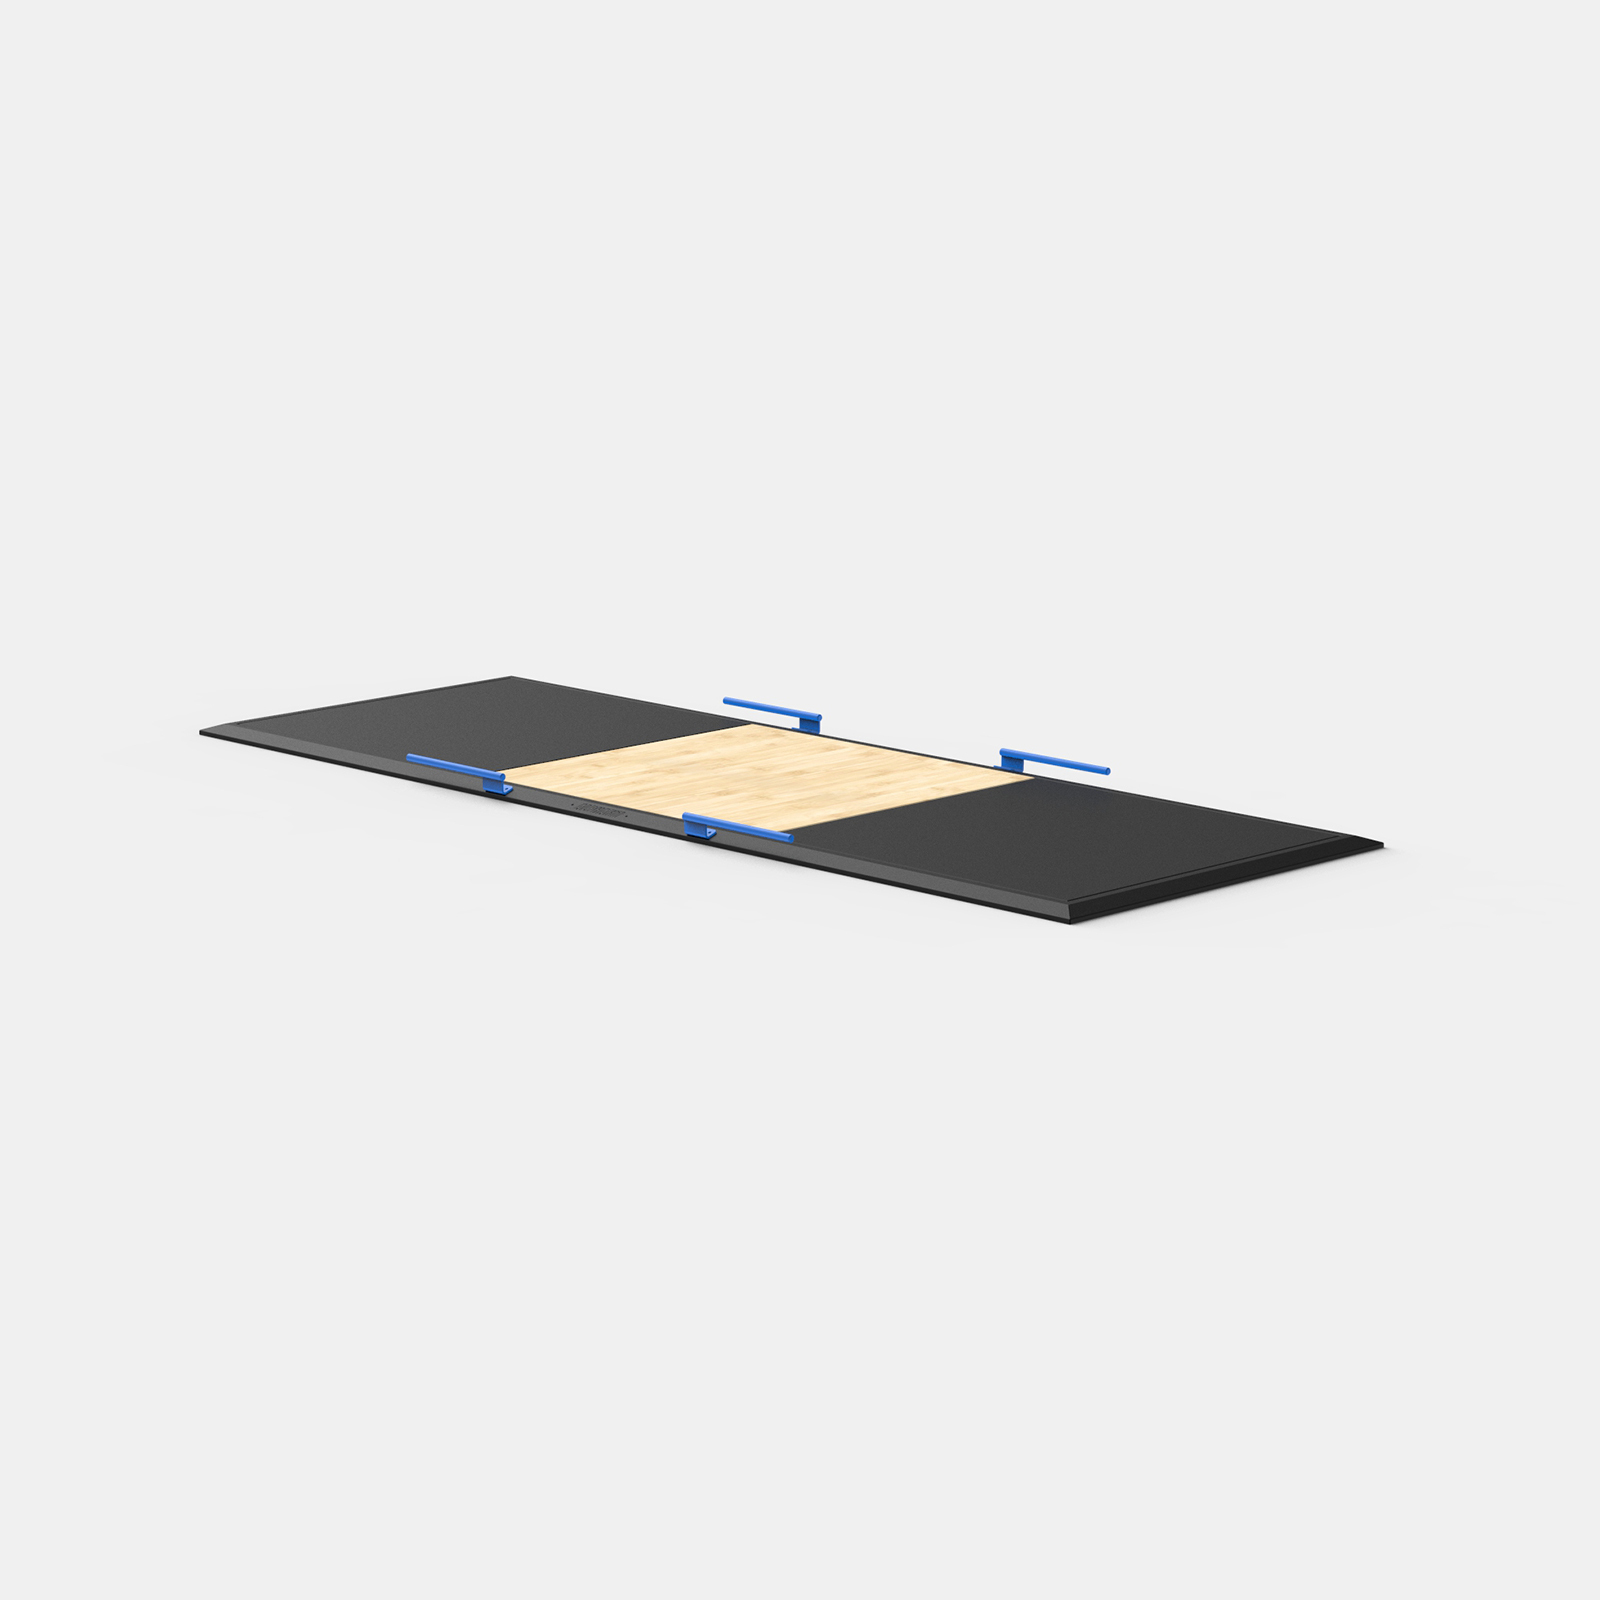 Deadlift Platform image